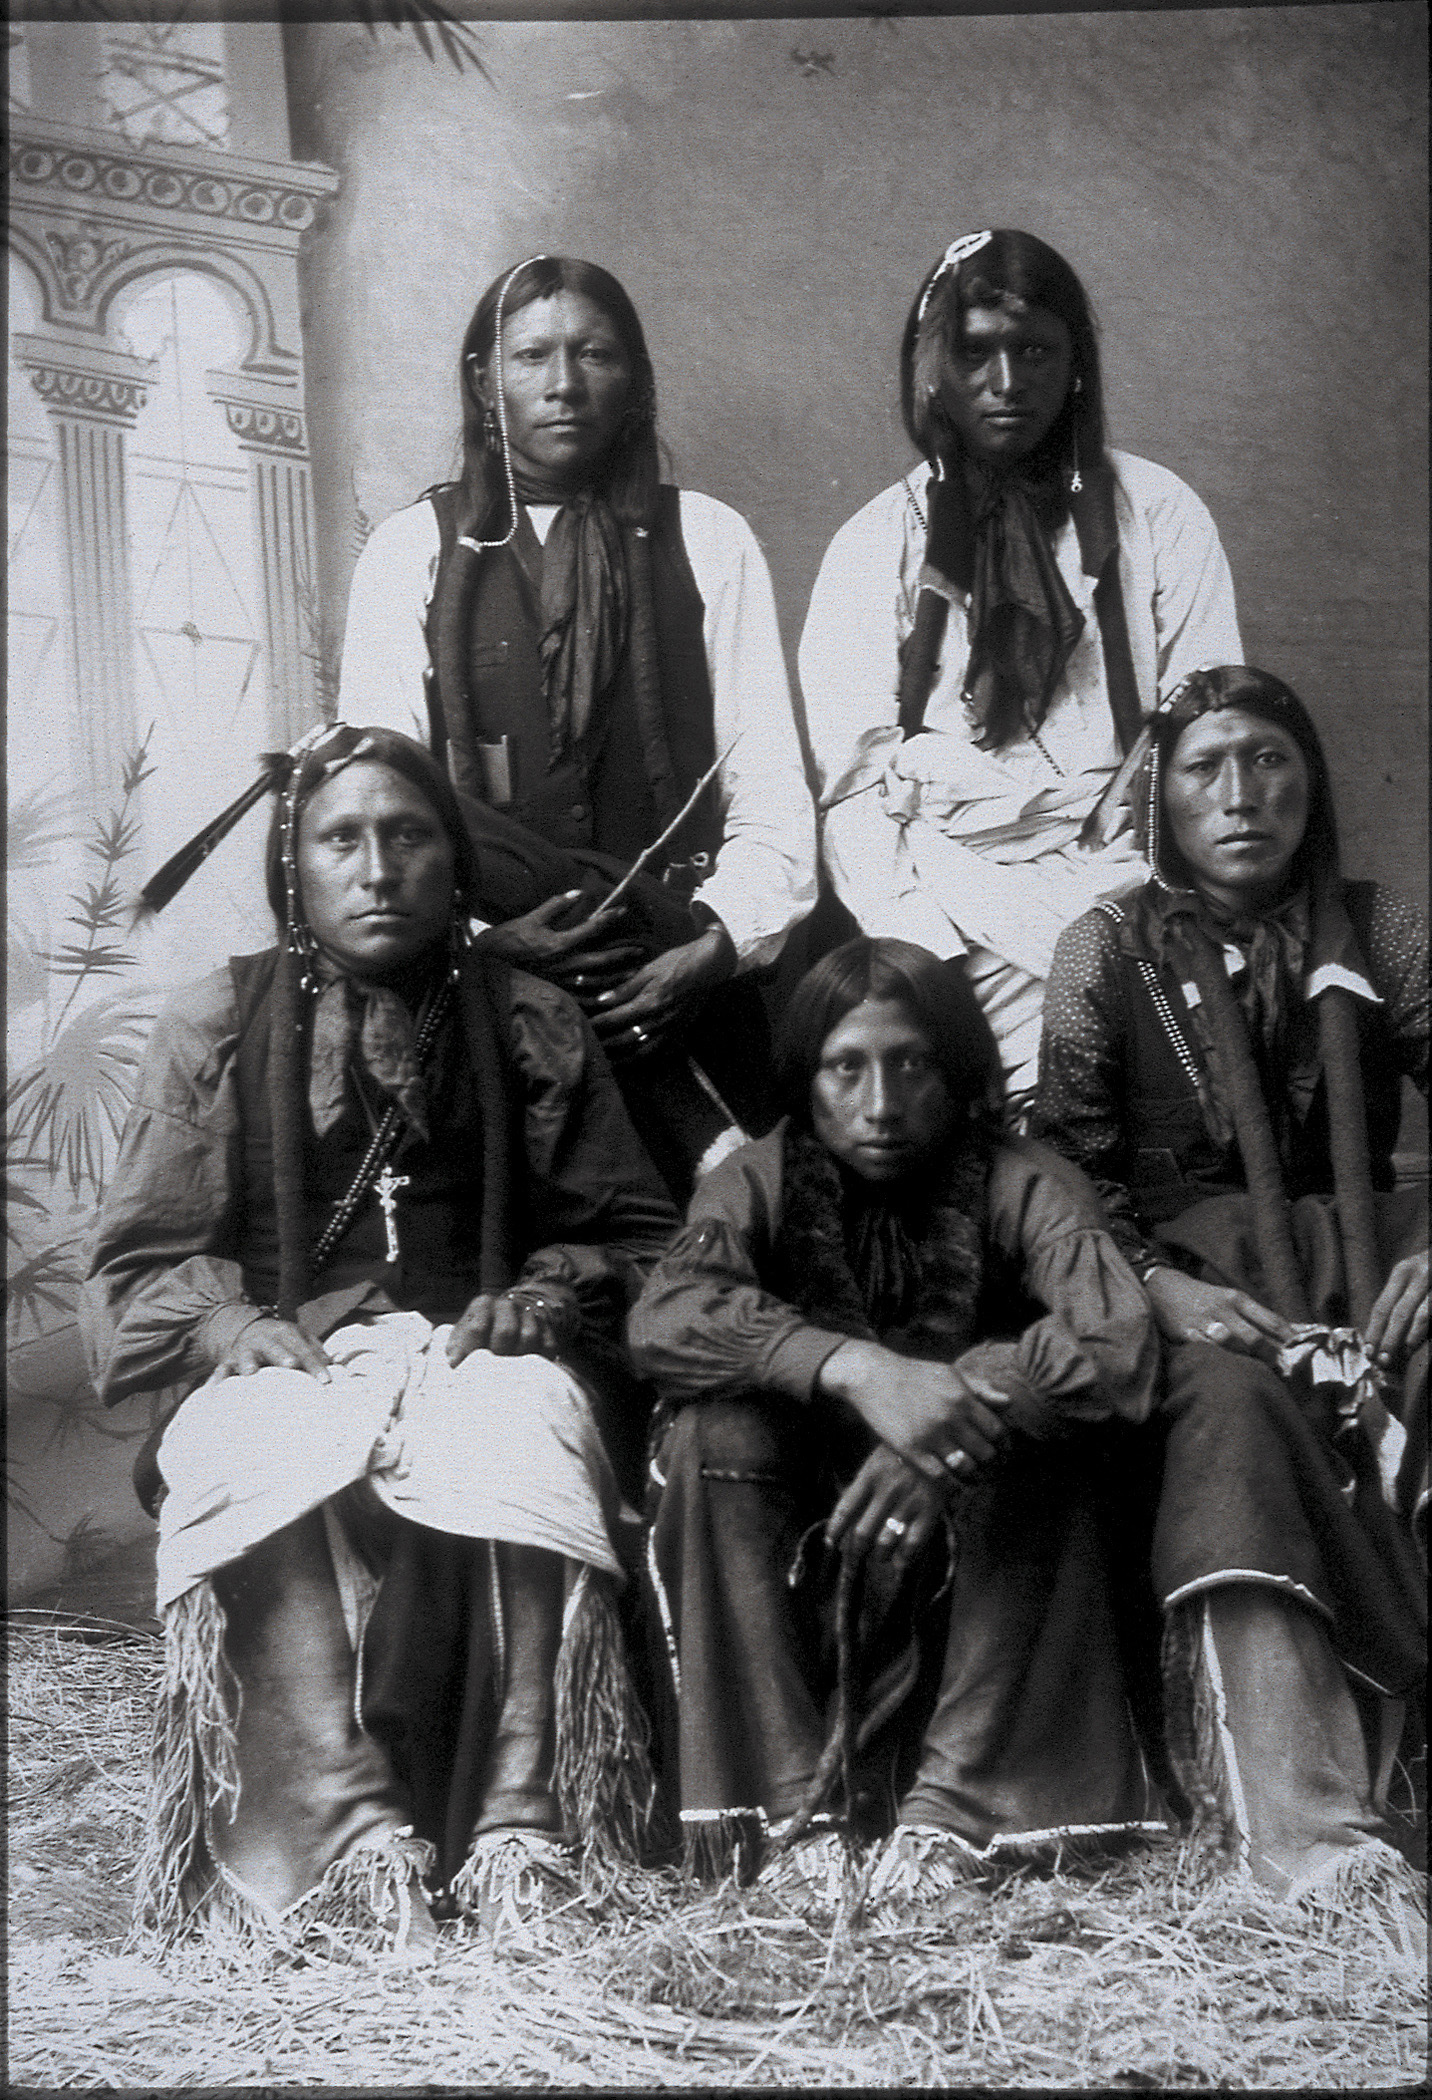 Five Indian men